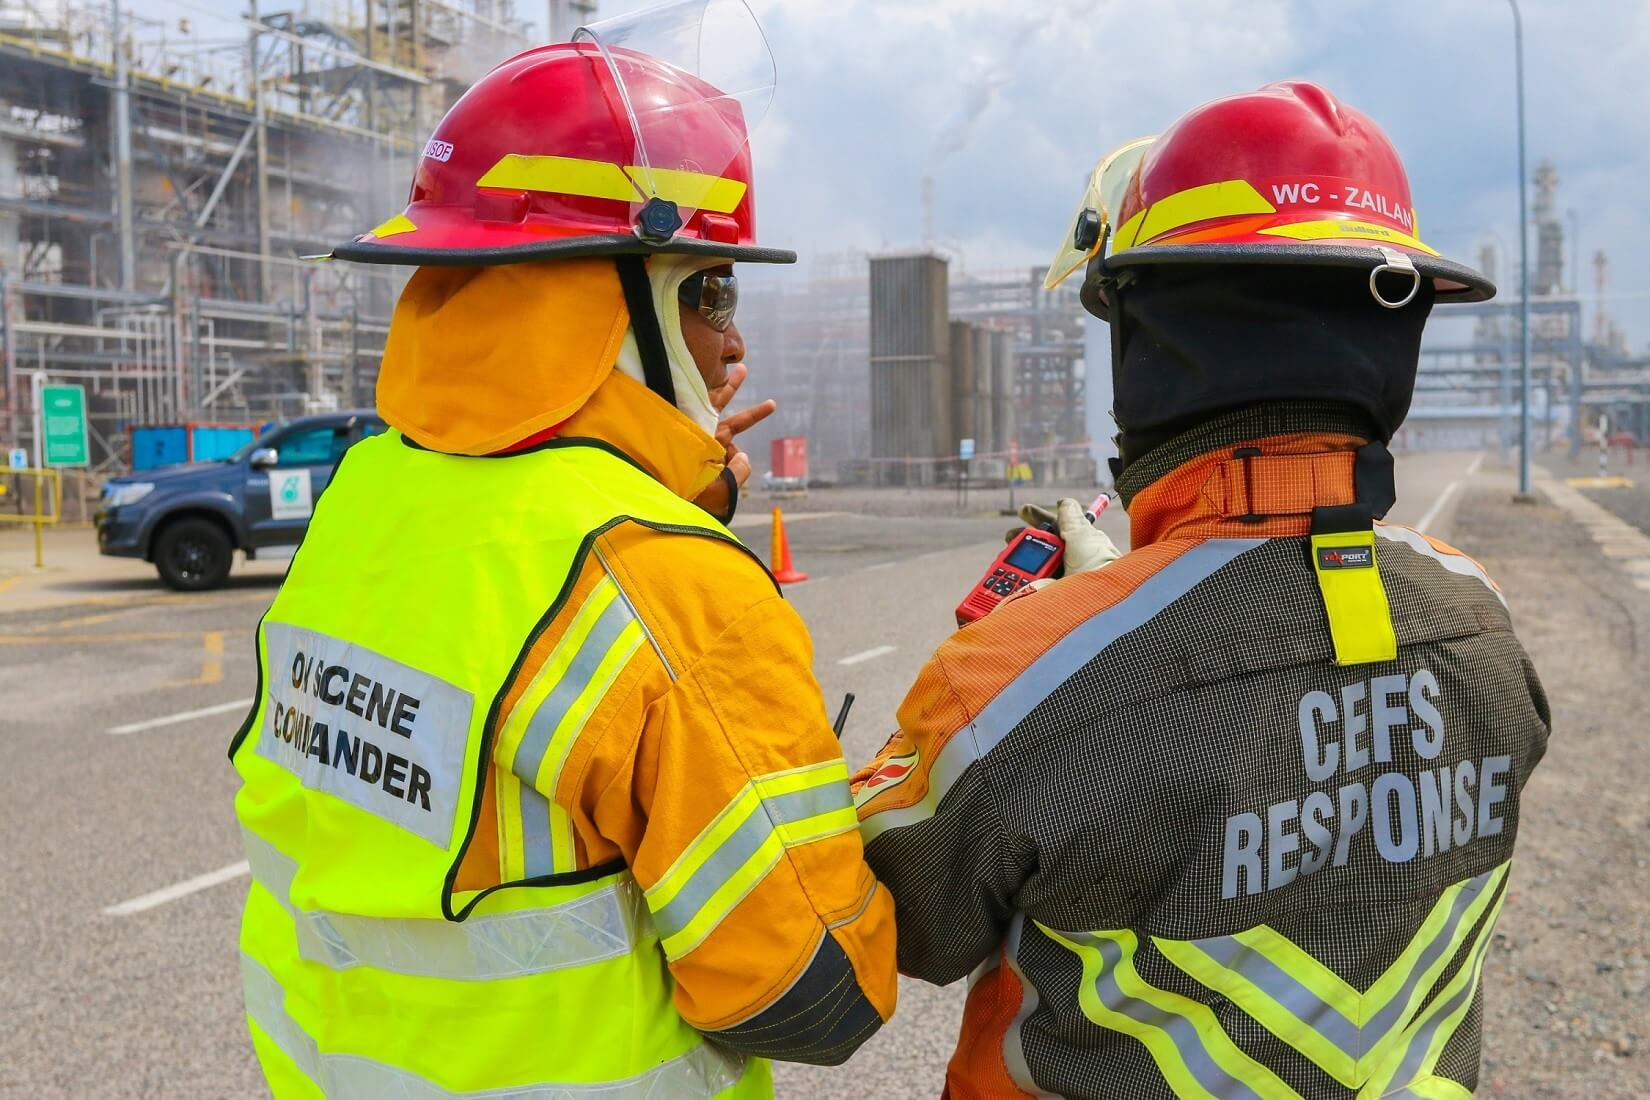 How to prevent incidents from hazardous chemicals used in the workplace